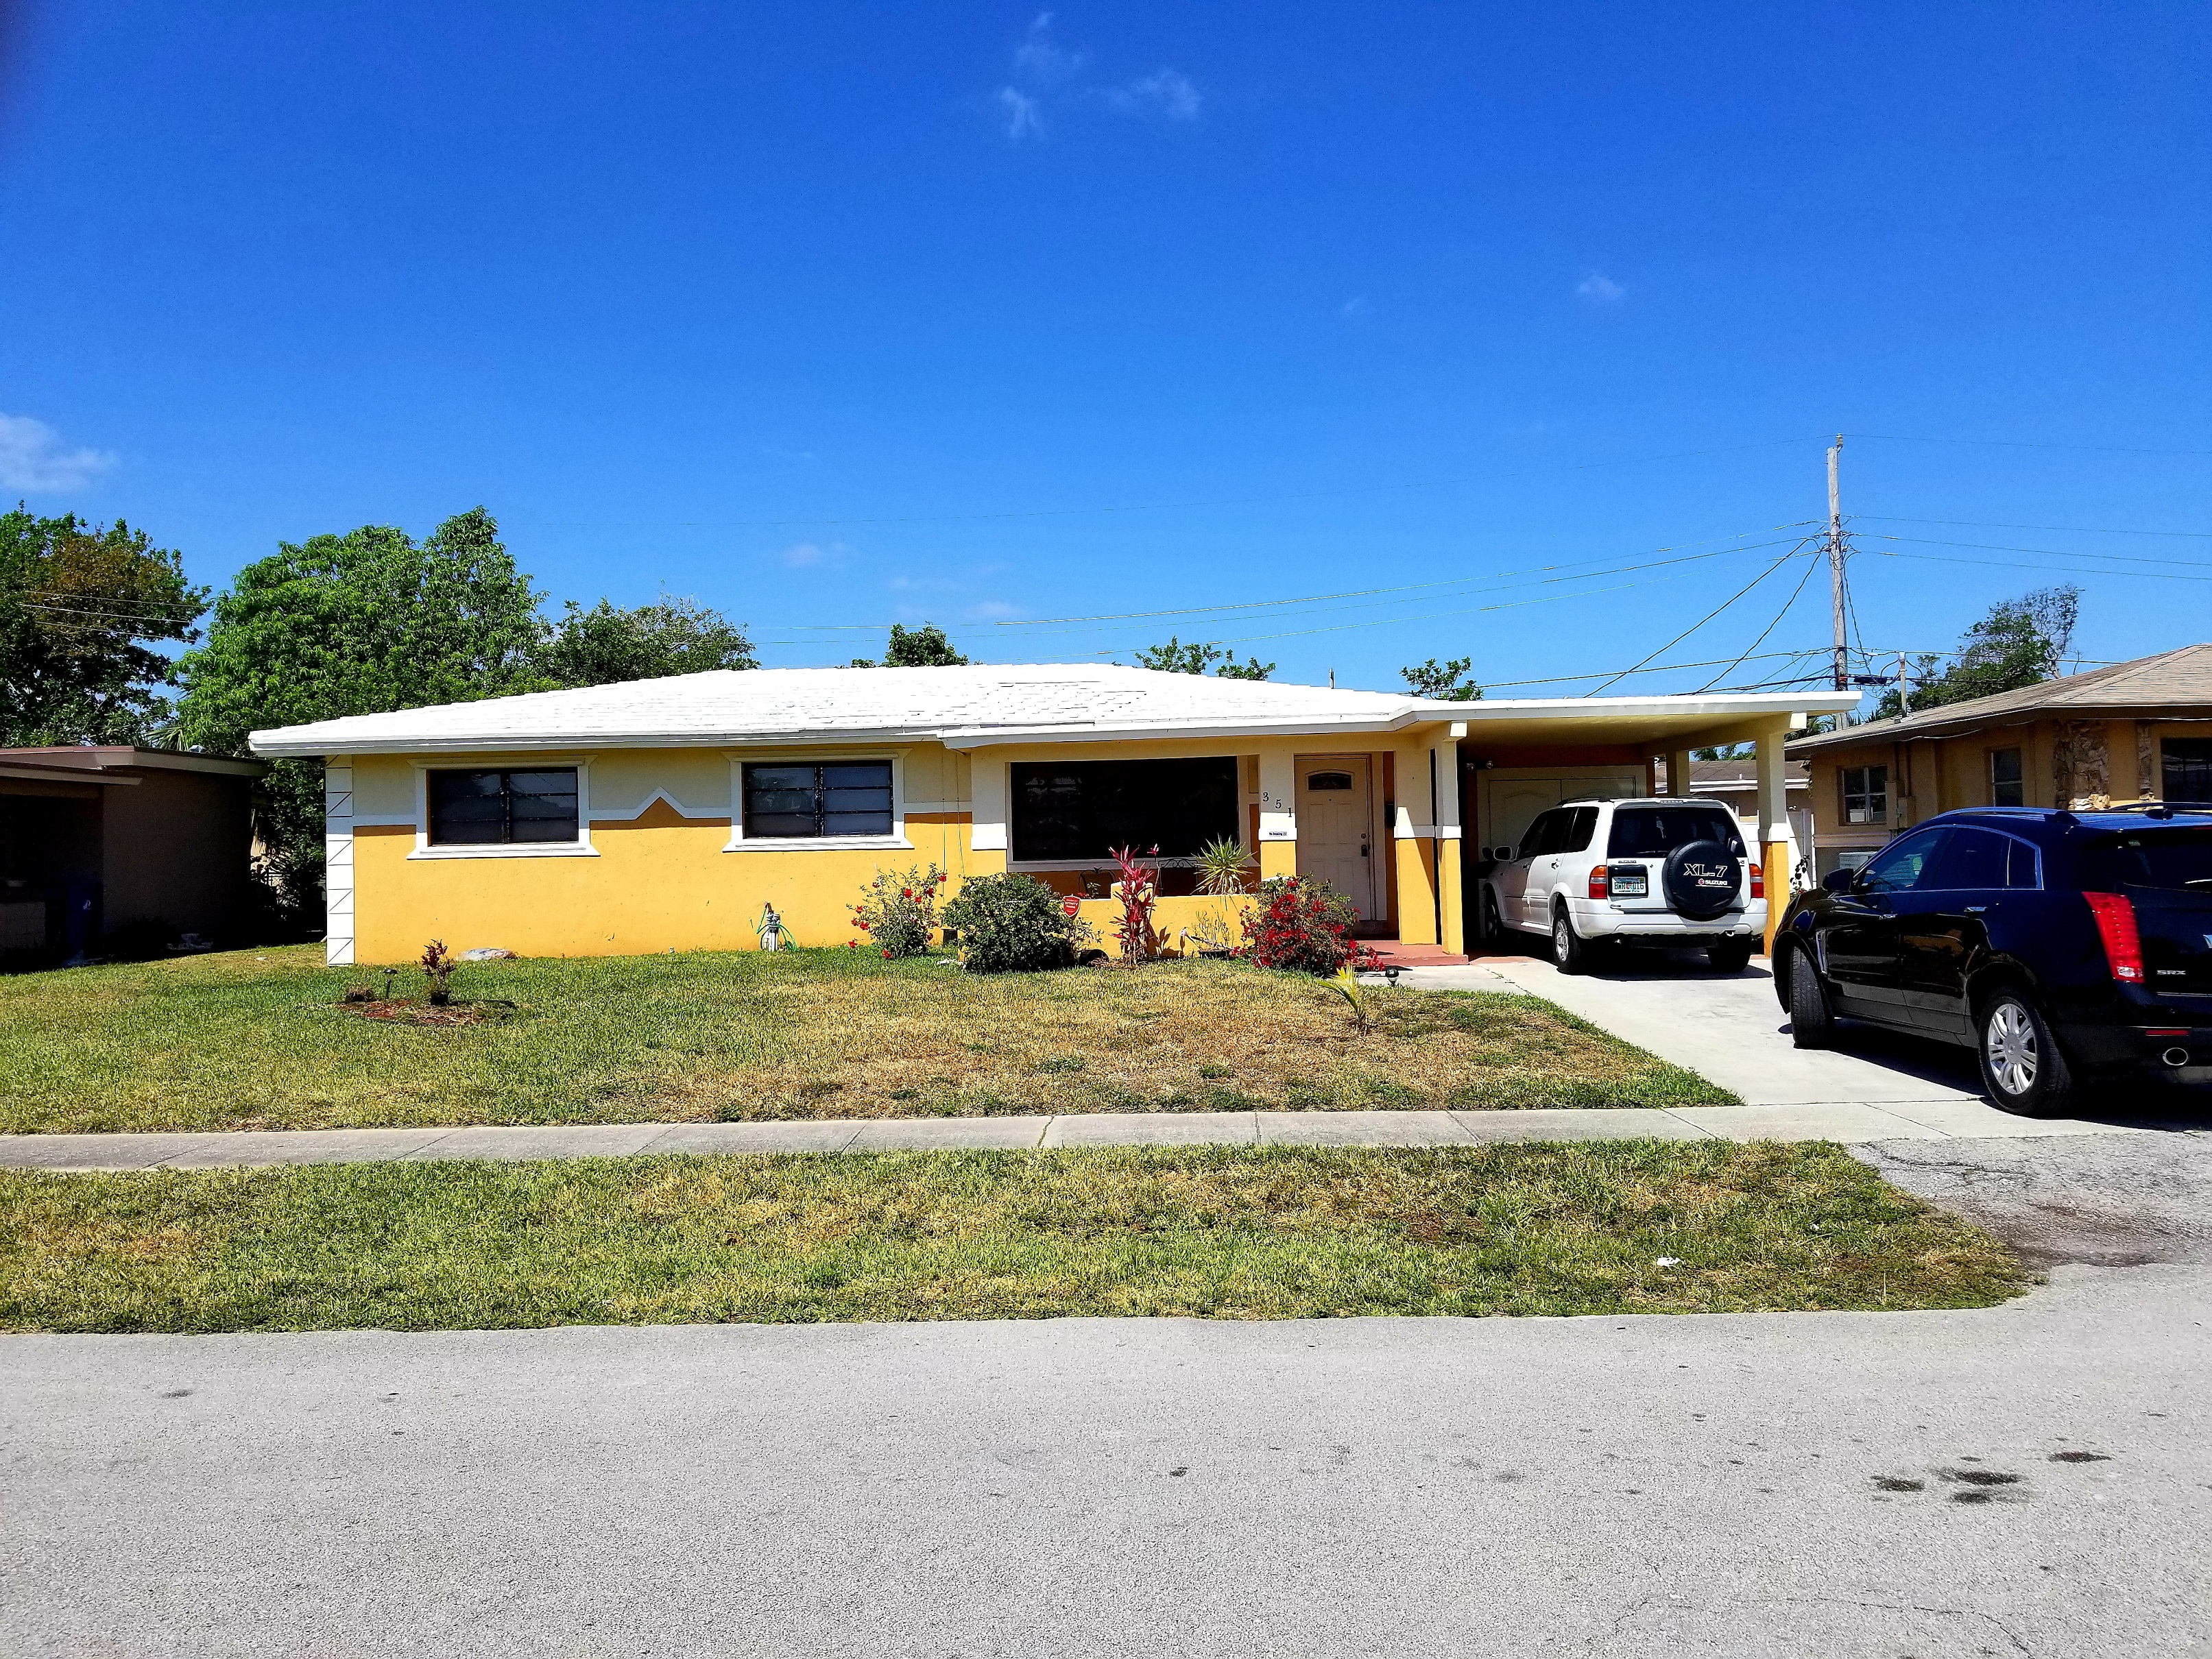 Photo of 351 SW 30th Avenue, Fort Lauderdale, FL, 33312